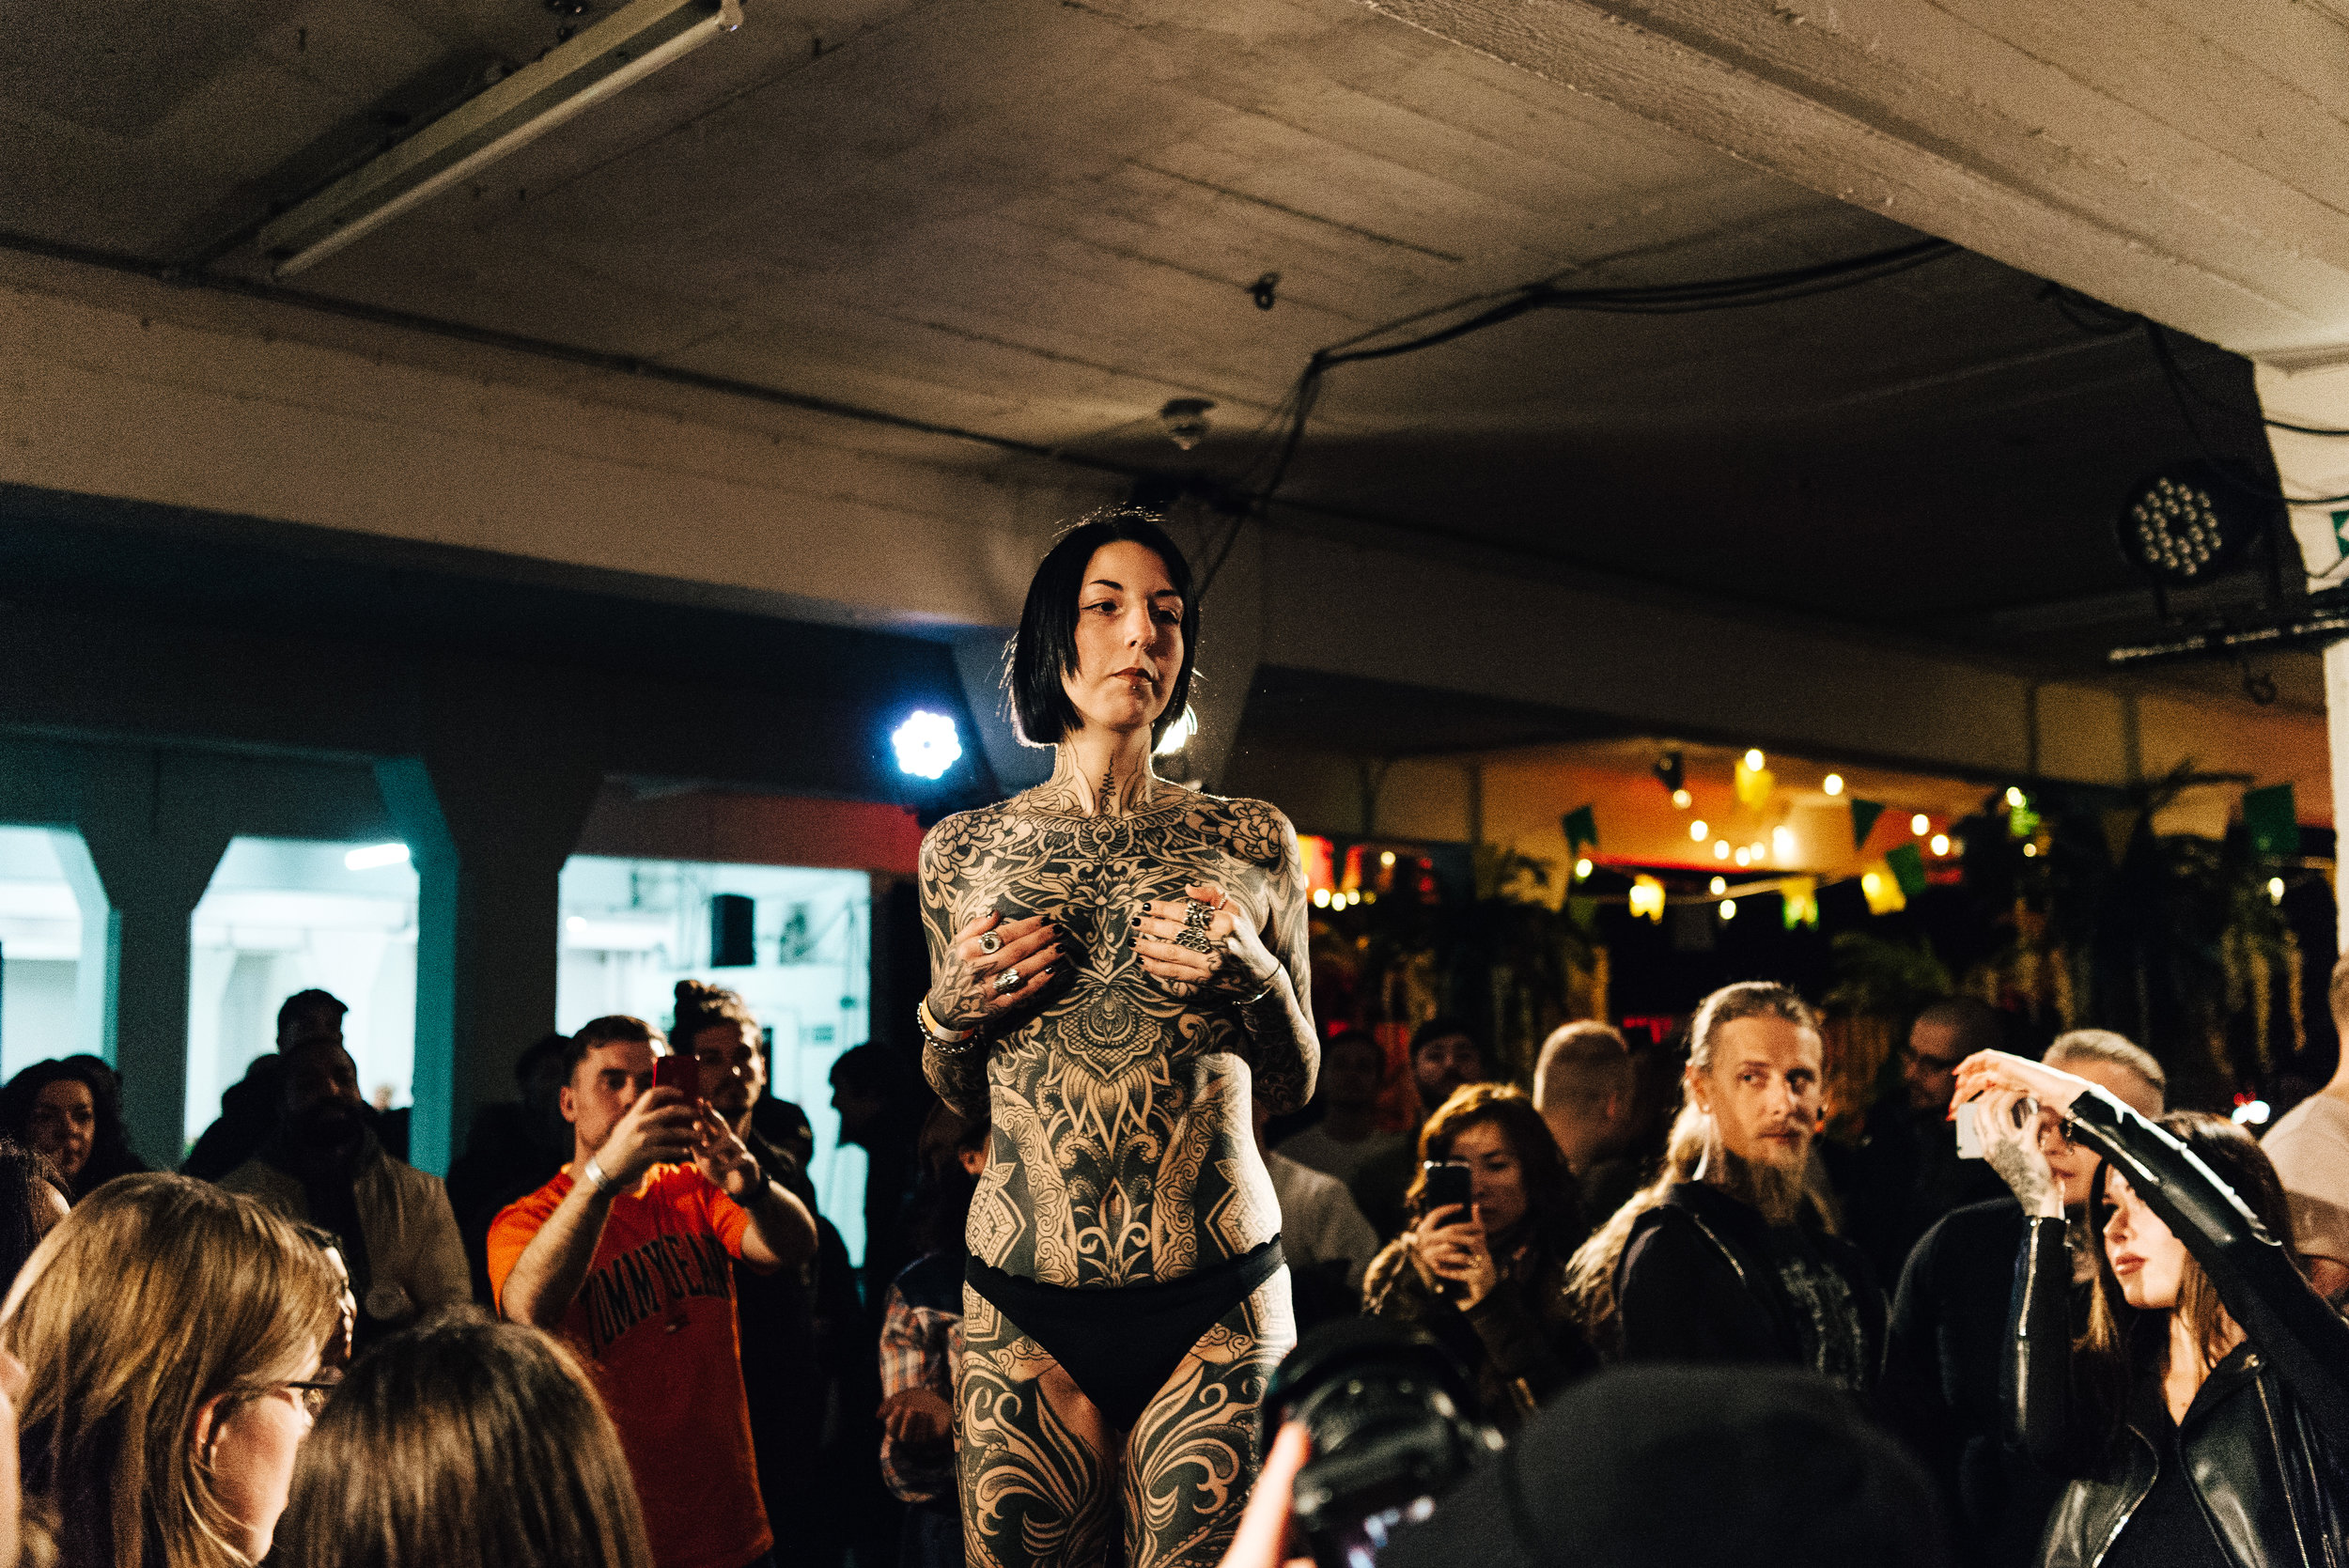 A woman presents her full-body tattoo during the Tattoo Collective competition at the Old Truman Brewery, Shoreditch on the 17th March 2018.